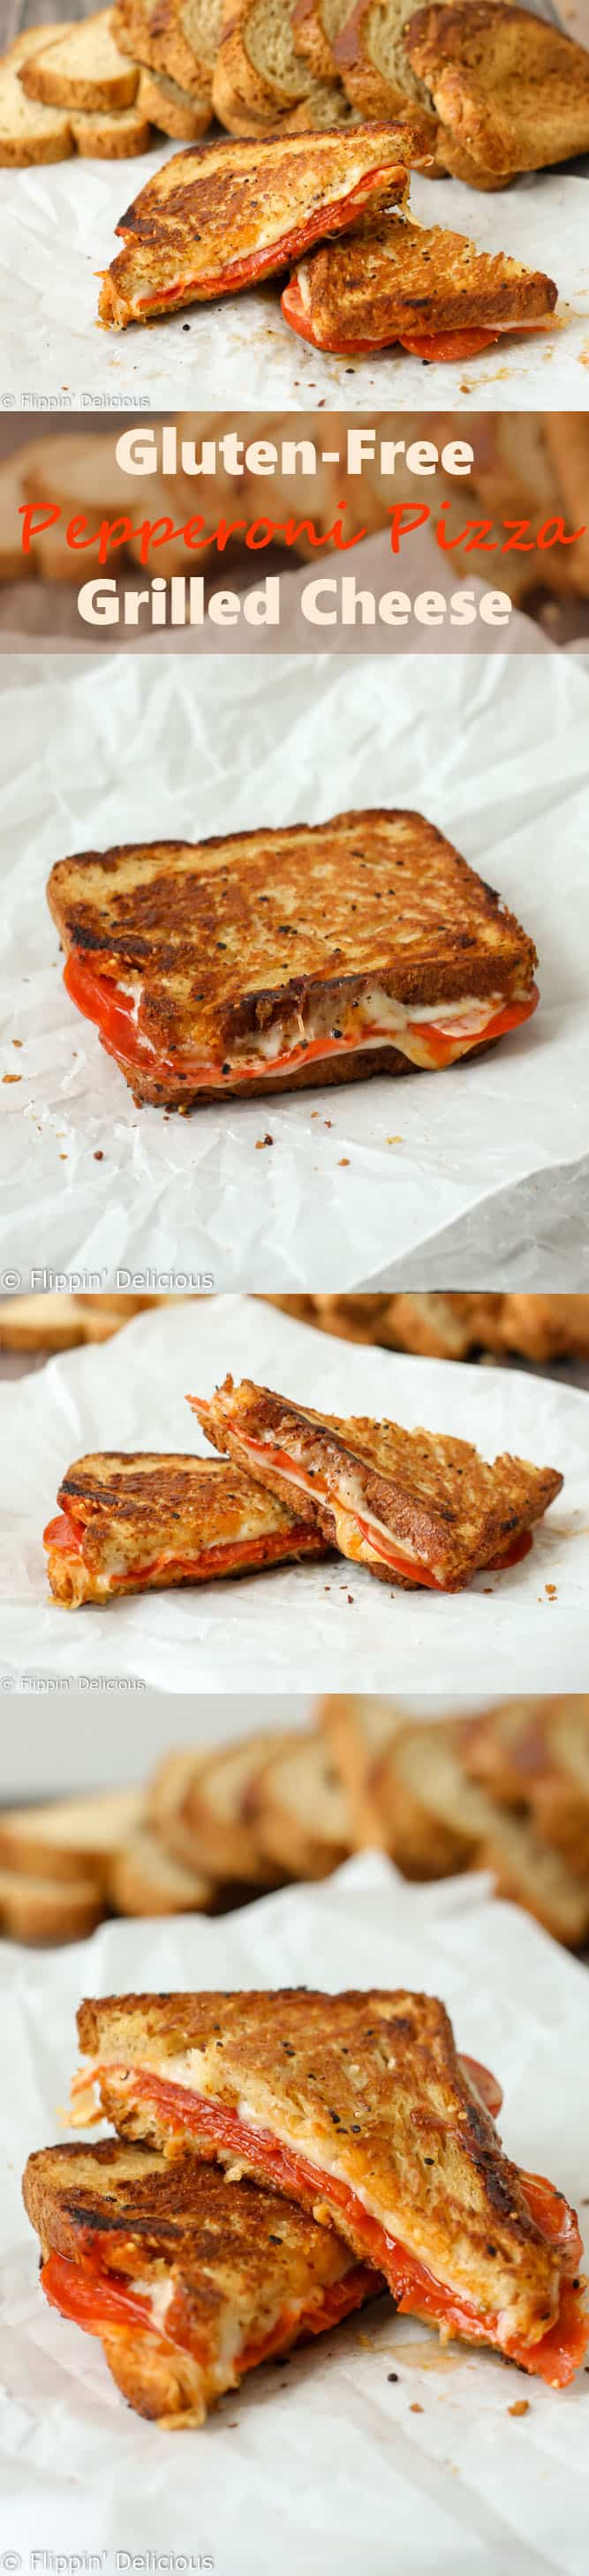 This Gluten Free Pepperoni Pizza Grilled Cheese Sandwich combines all of your favorite pizza flavors into a gooey gluten free grilled cheese sandwich!